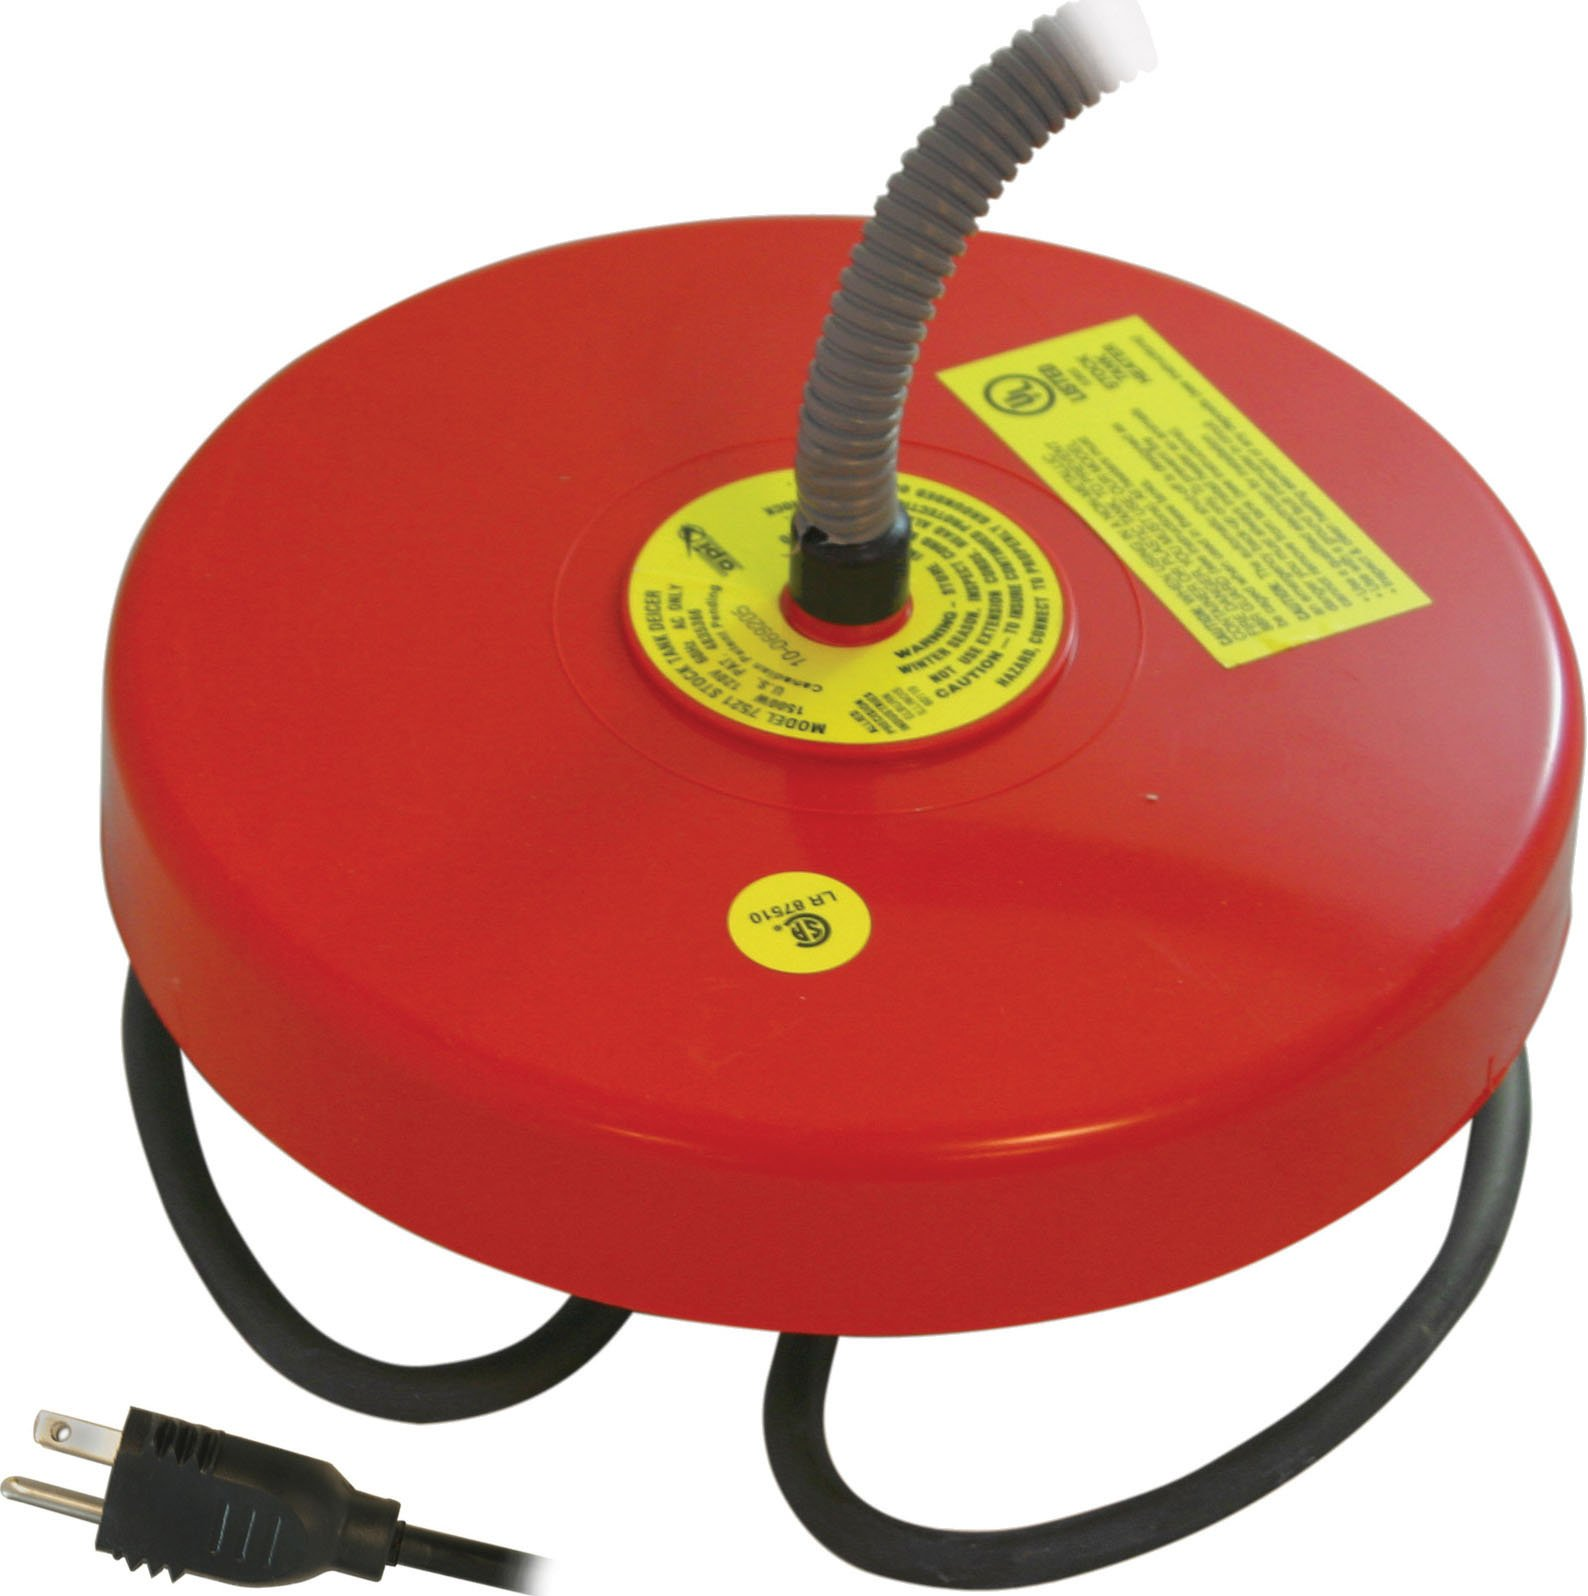 Allied Precision 7521 Floating 1,500-Watt Pond De-Icer/Heater